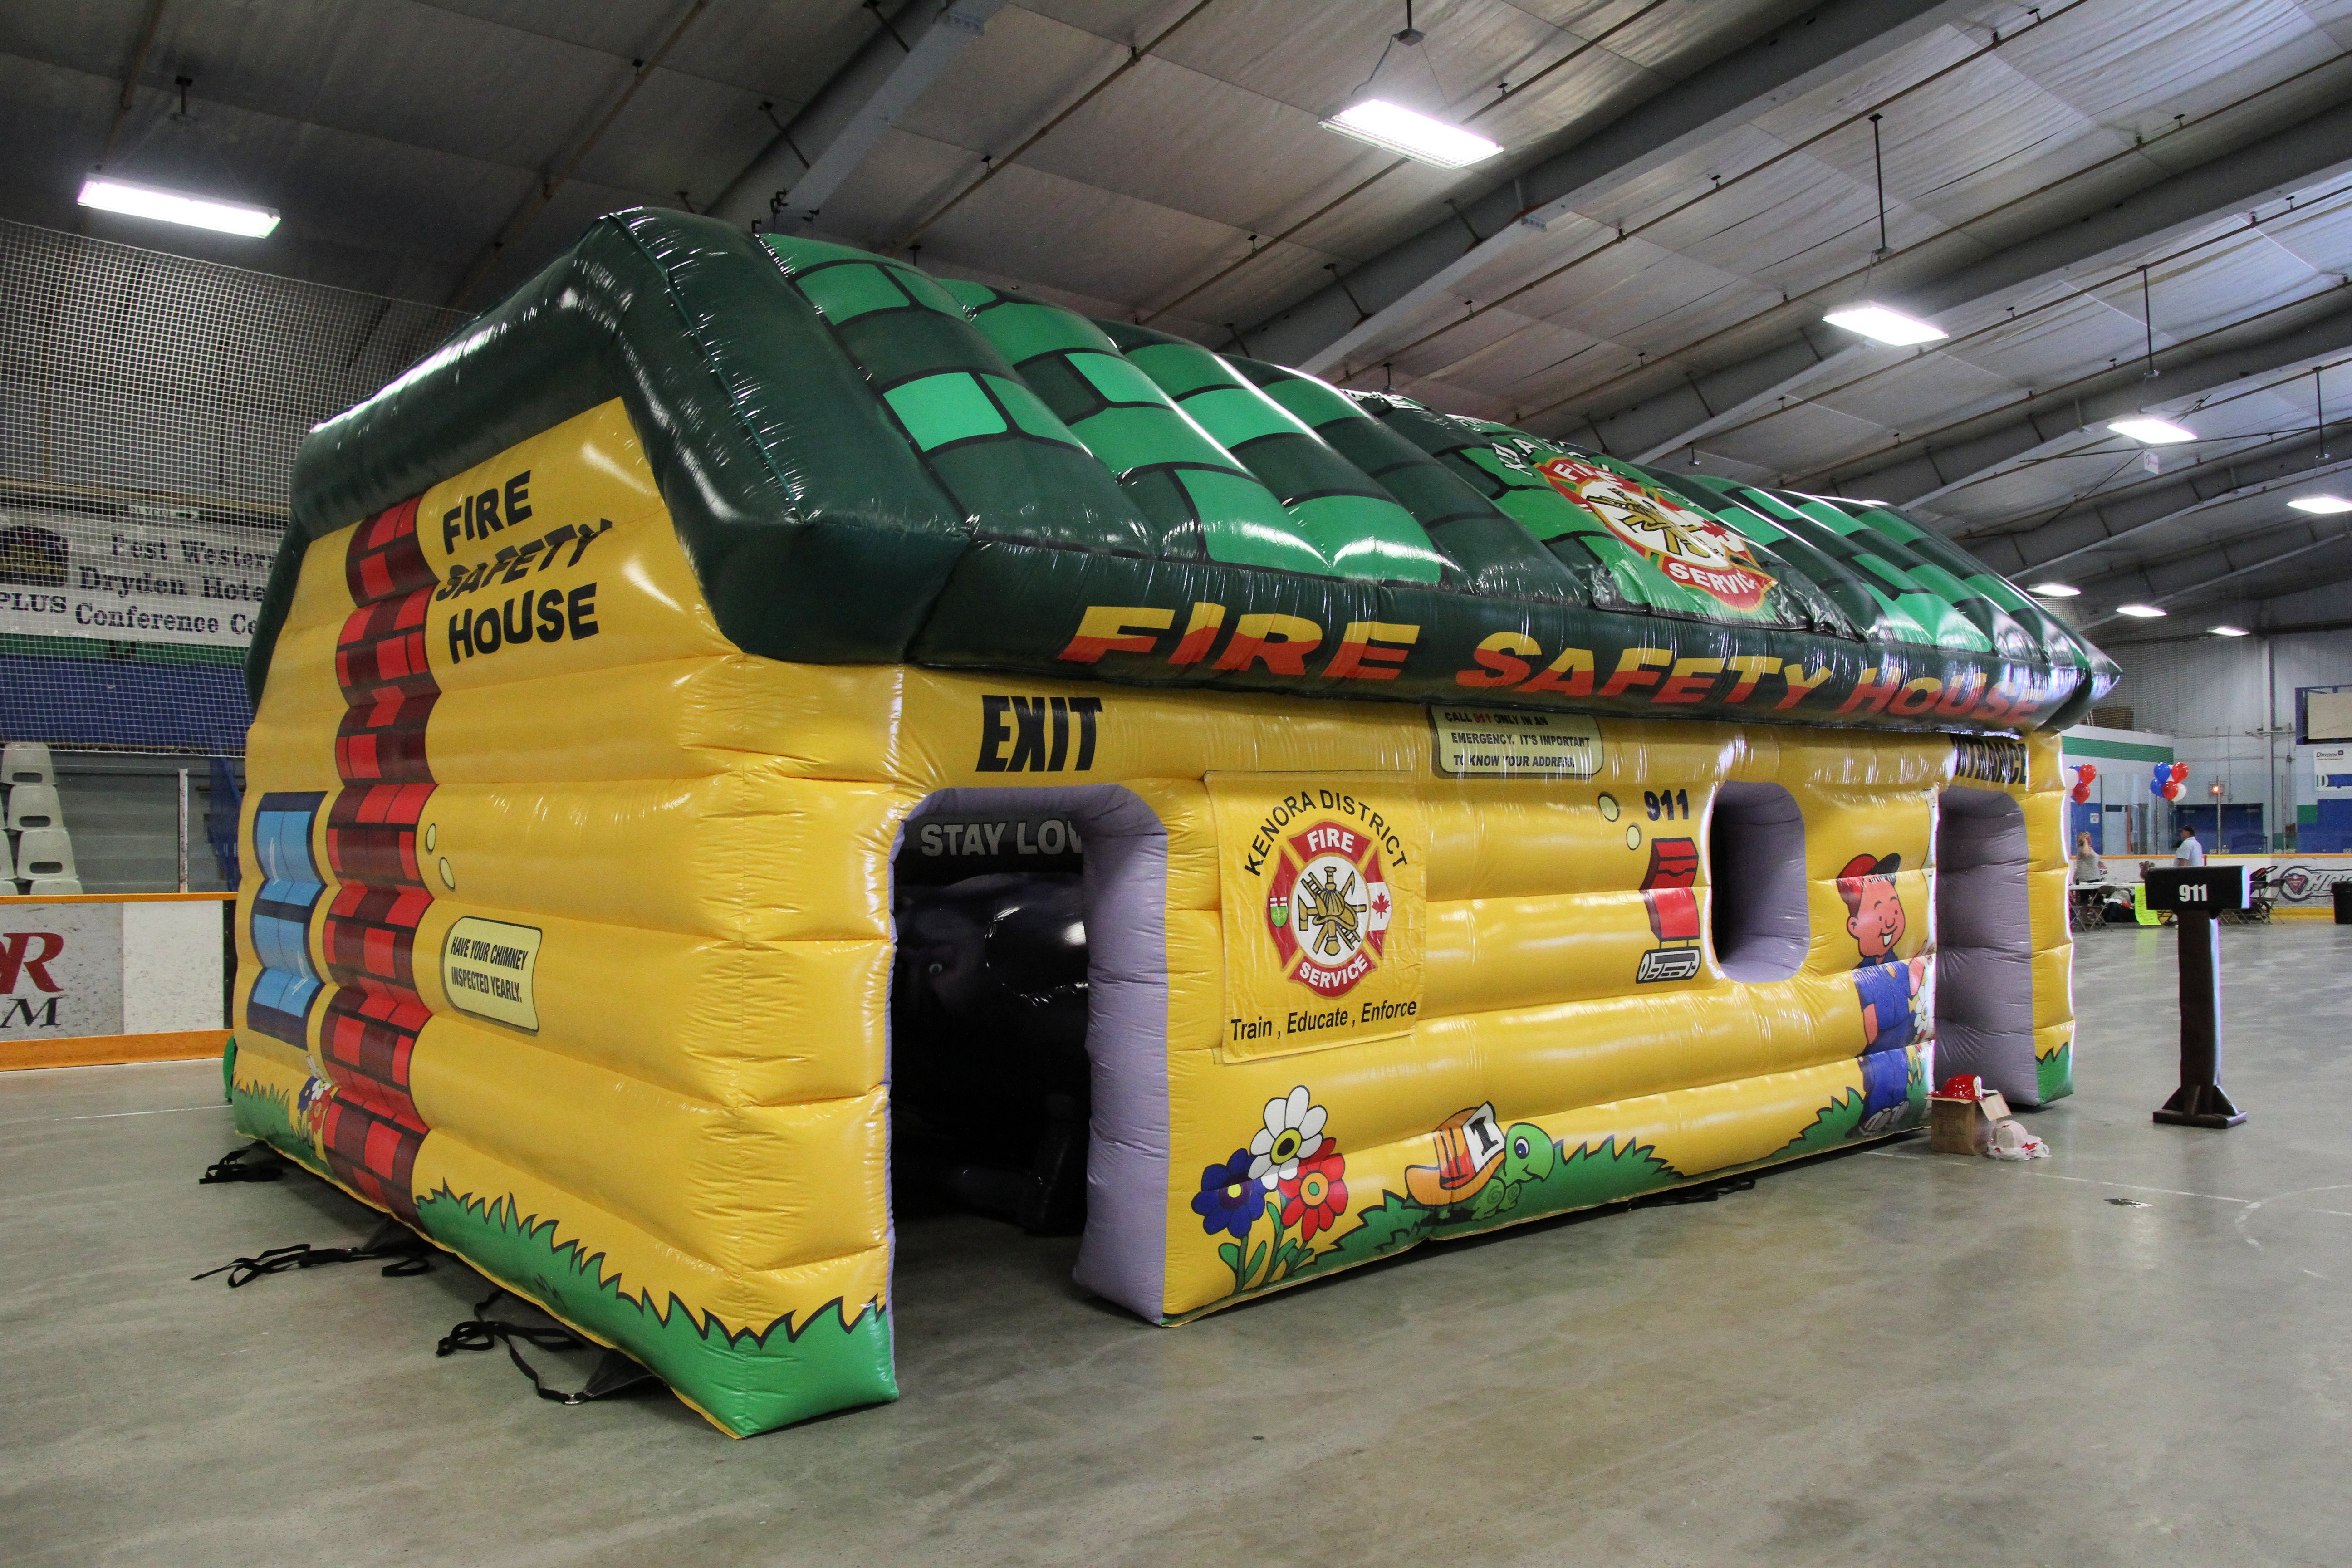 Image of inflatable fire safety house